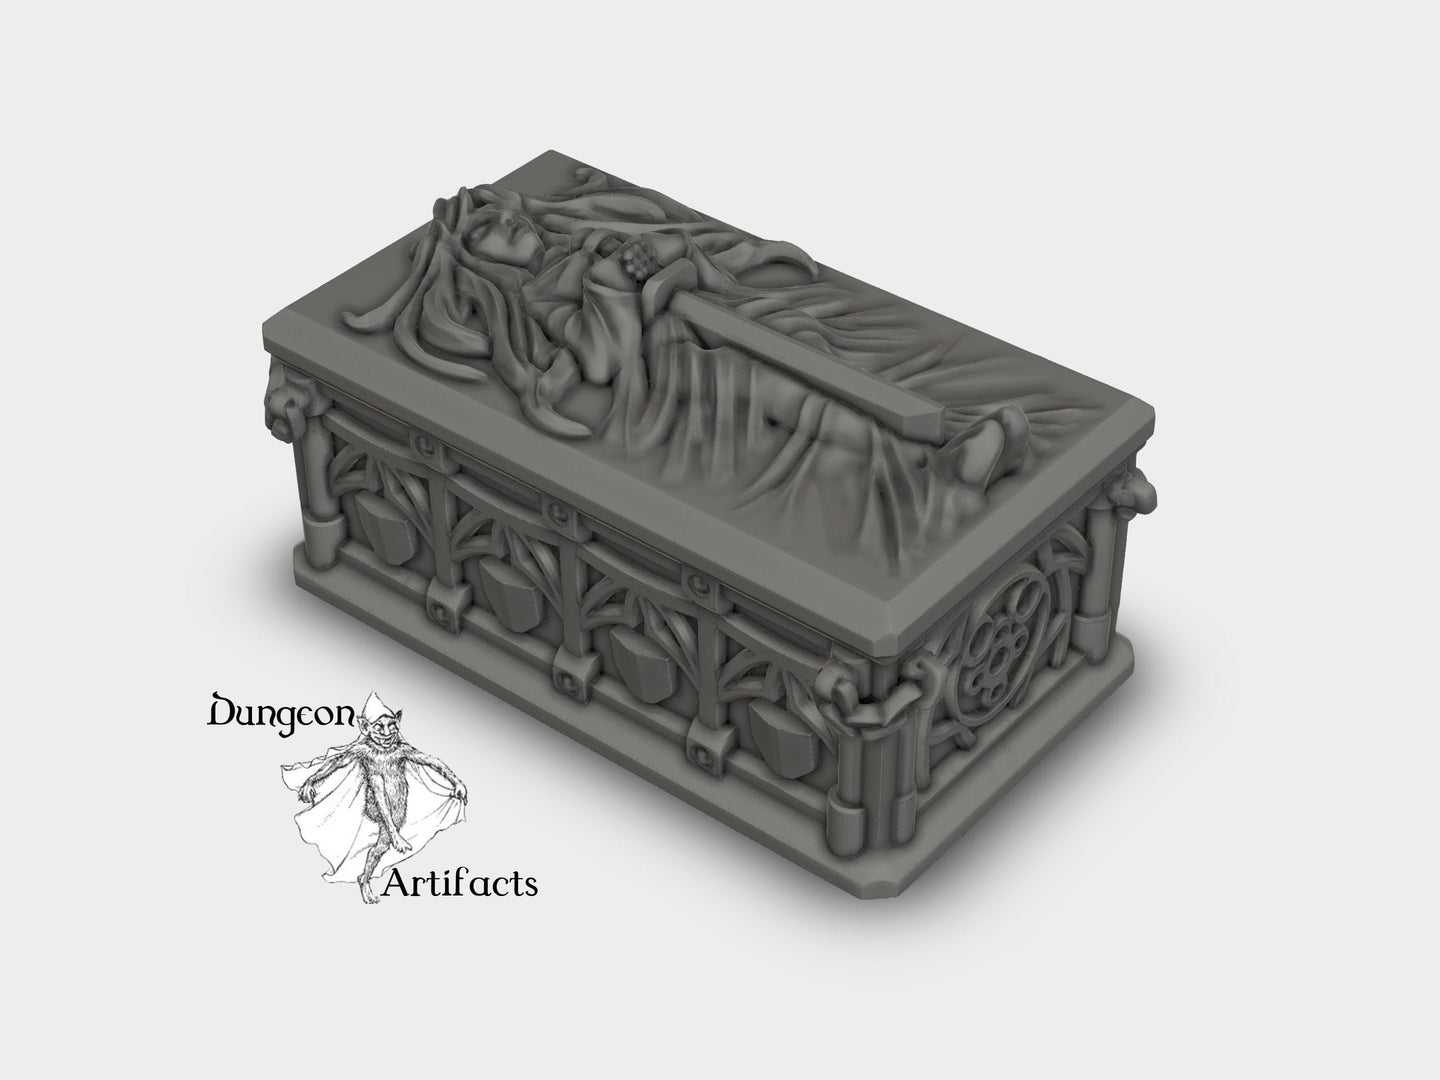 Dragonlock Ultimate - Sarcophagus 28mm 32mm Wargaming Terrain D&D, DnD, Pathfinder, SW Legion, Warhammer, 40k